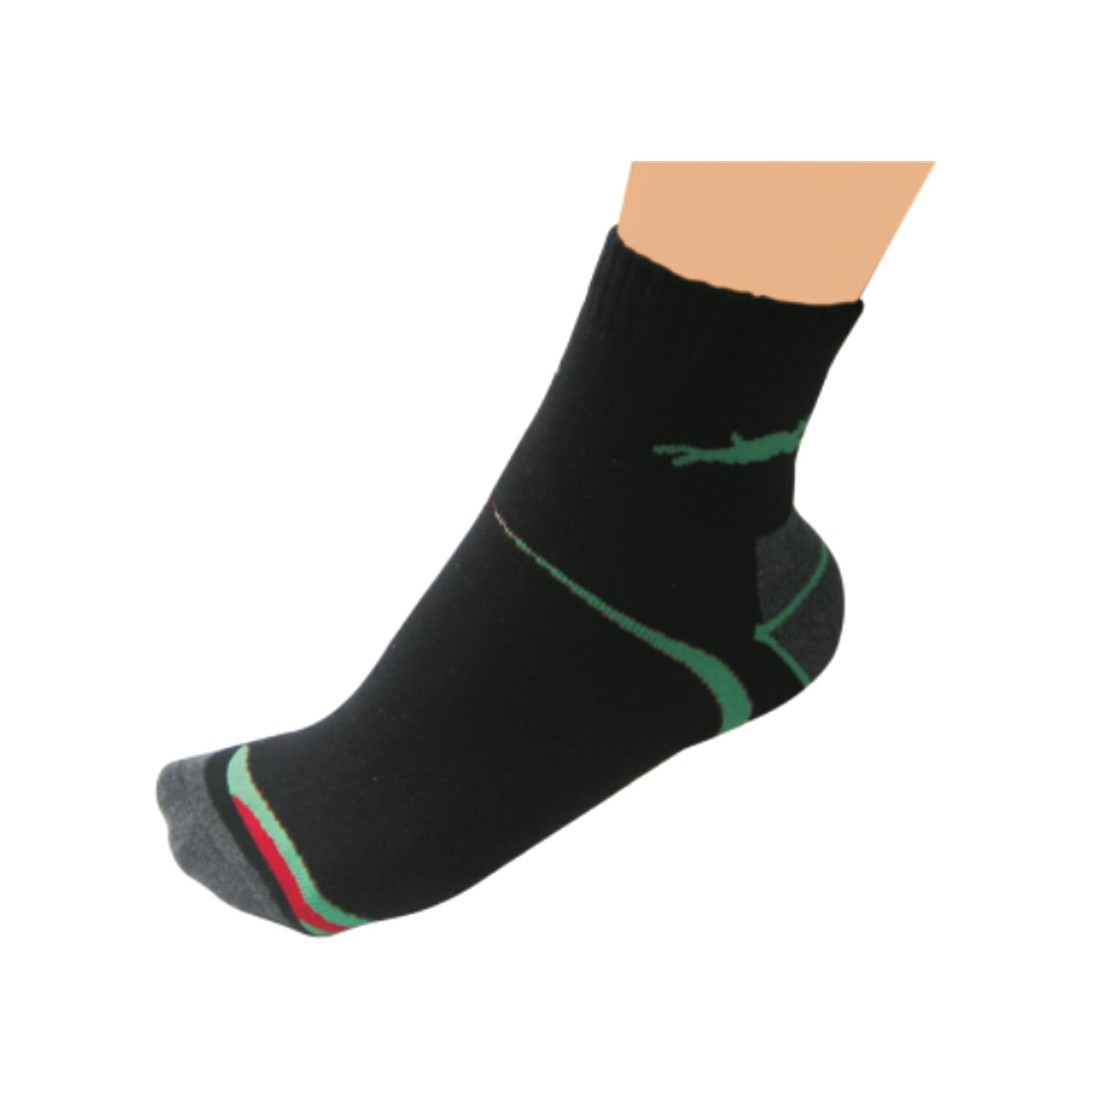 SOCKS (Black/Grey/Green/Red)